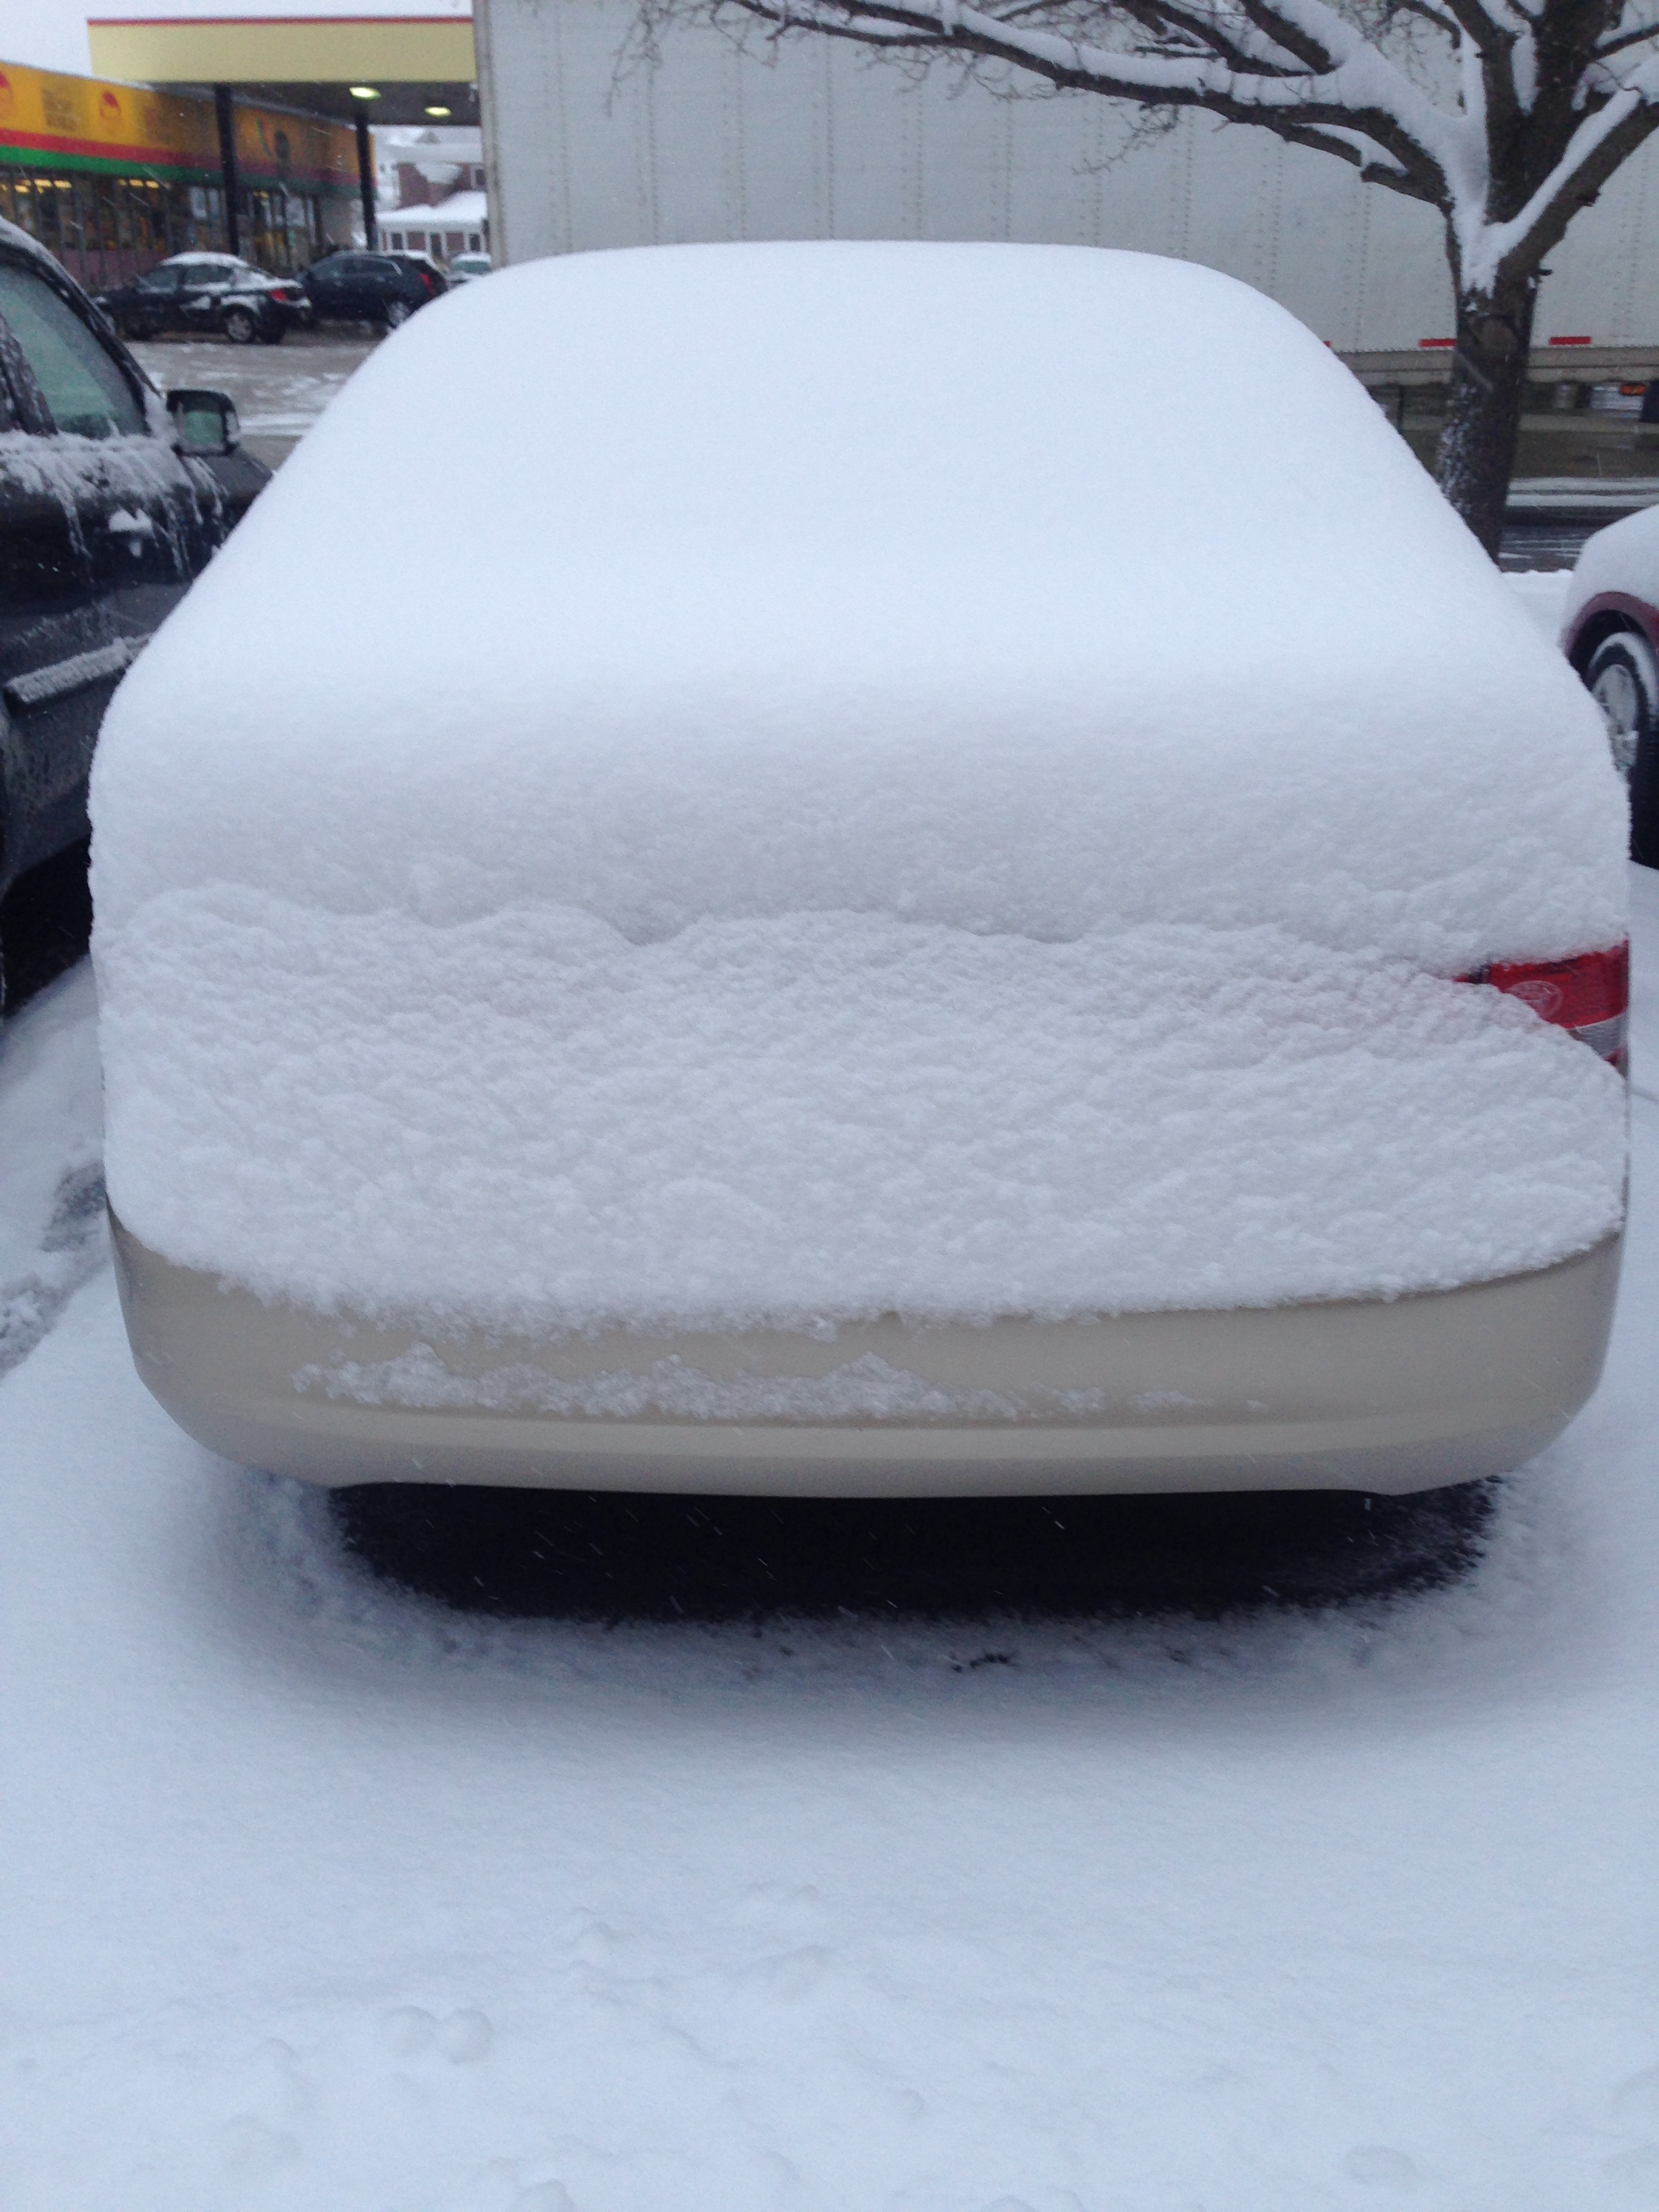 My car this morning. Cajuns cannot handle this.